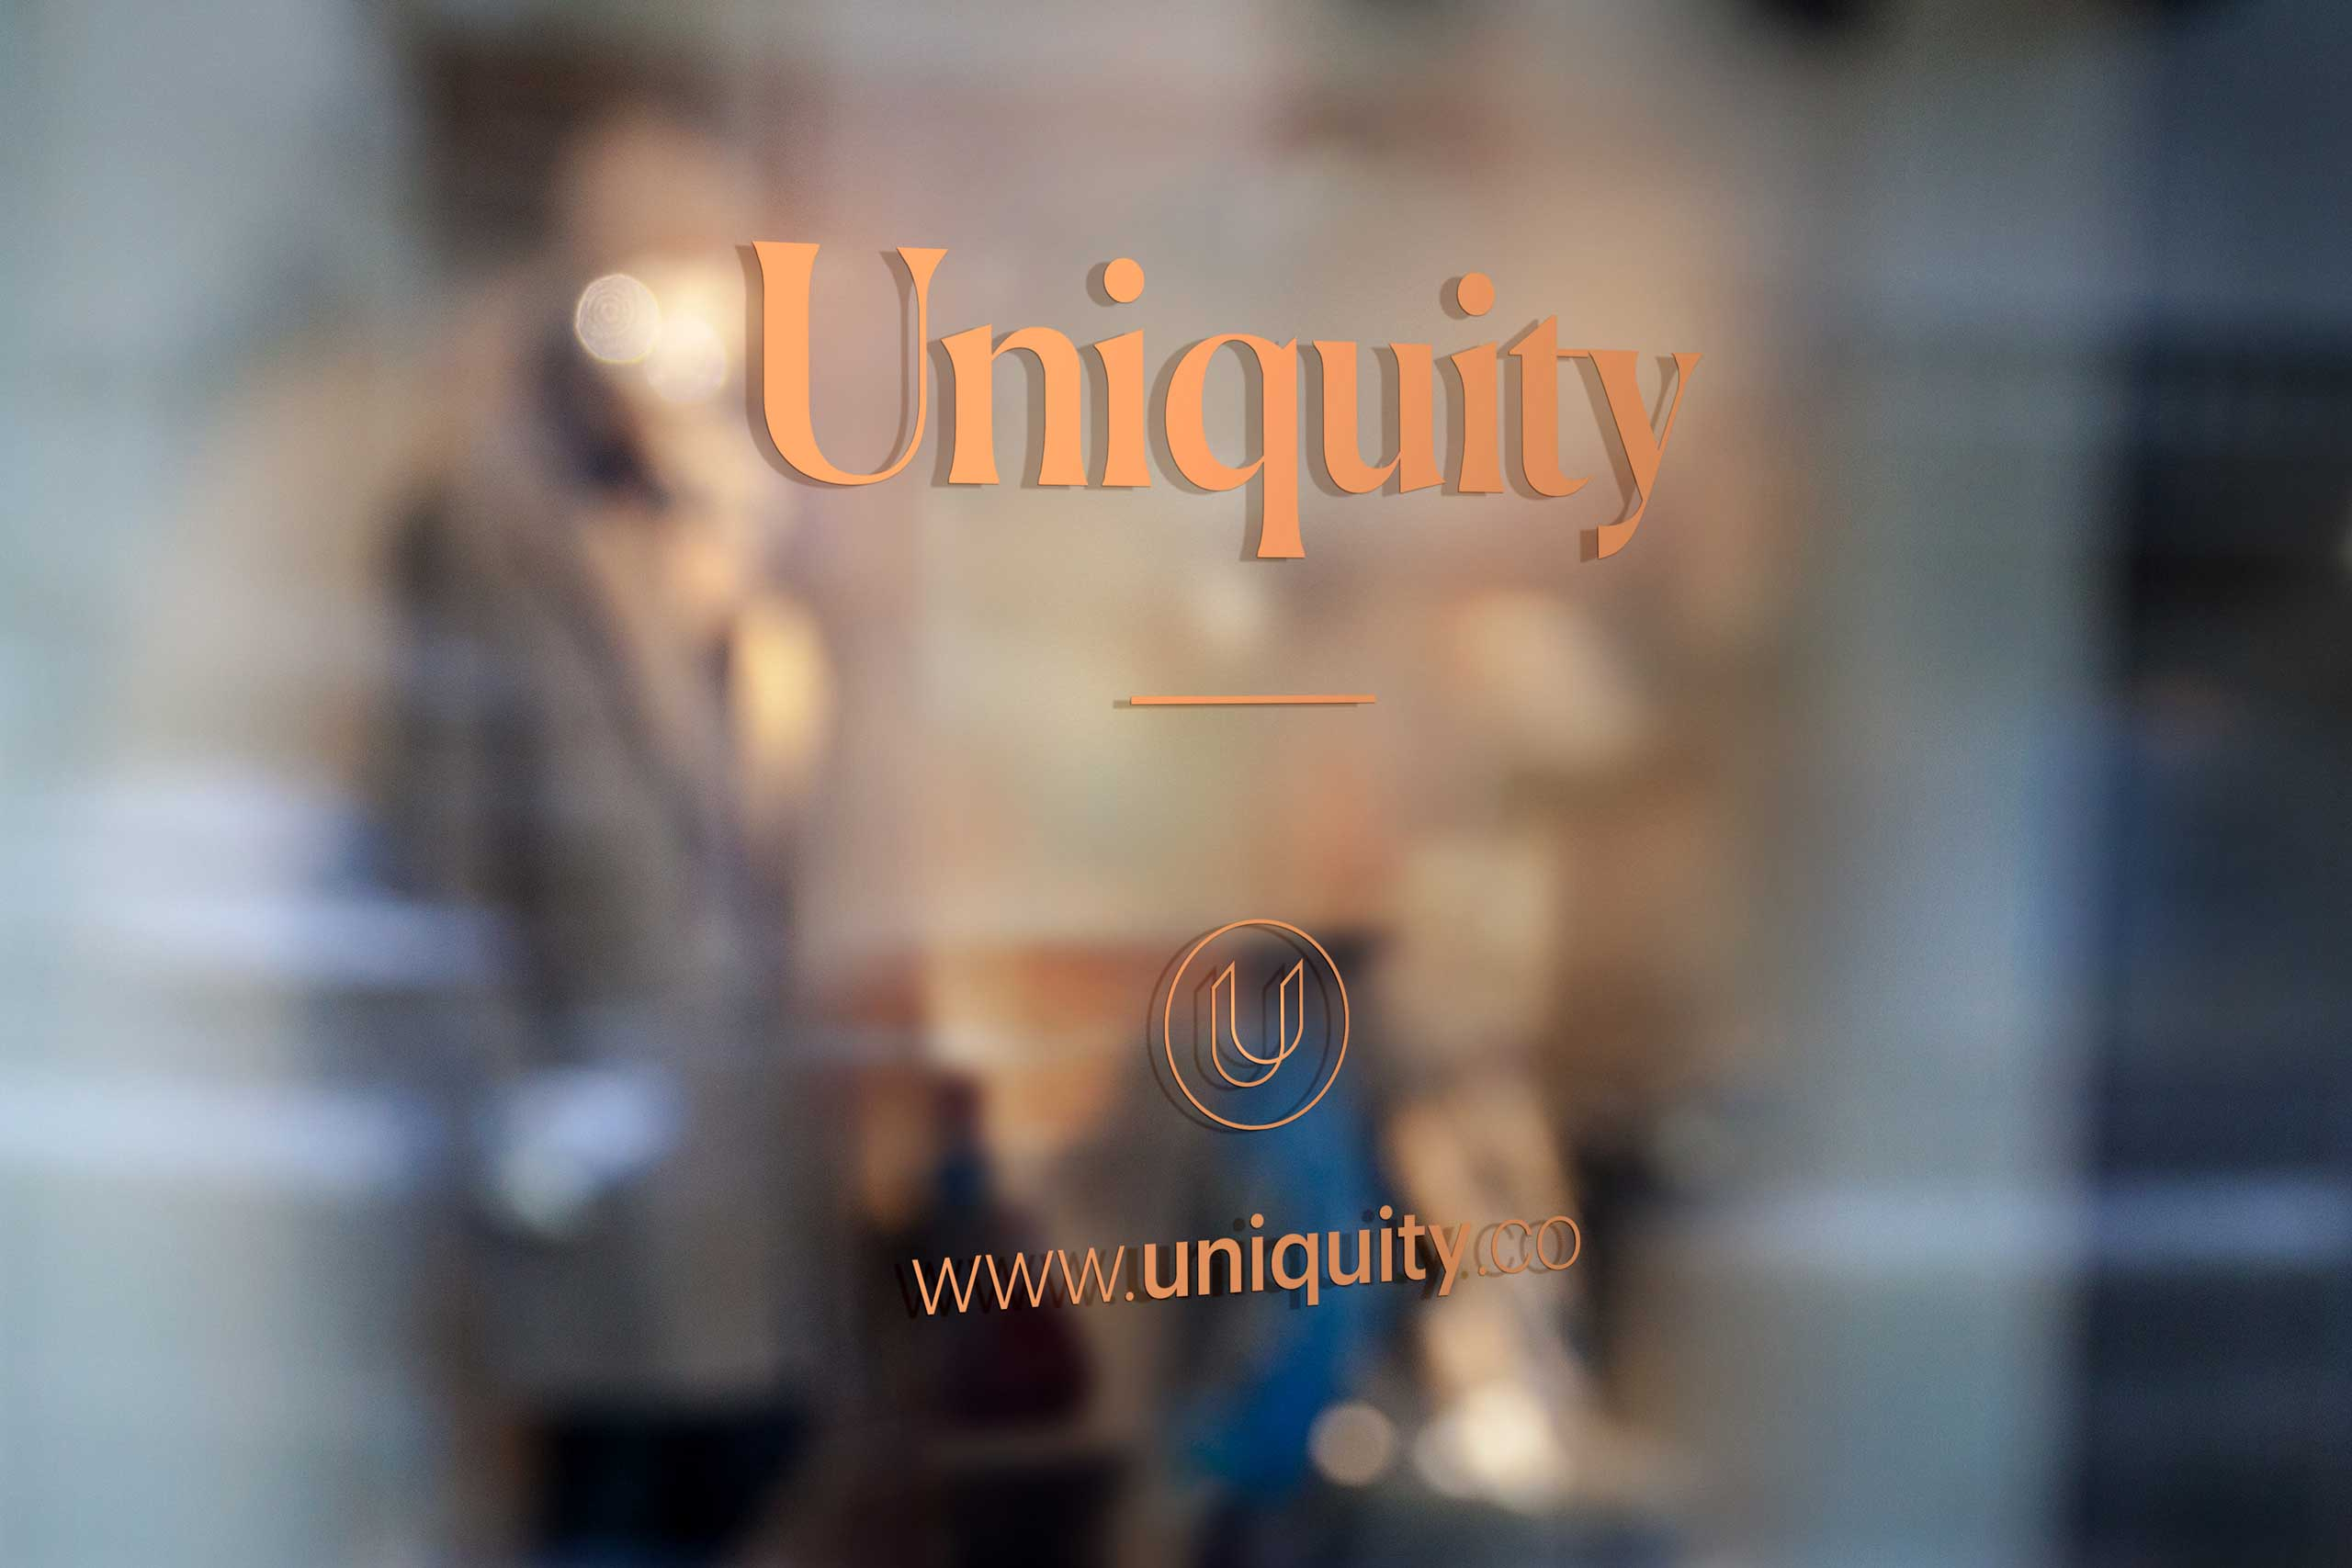 outside sign for uniquity